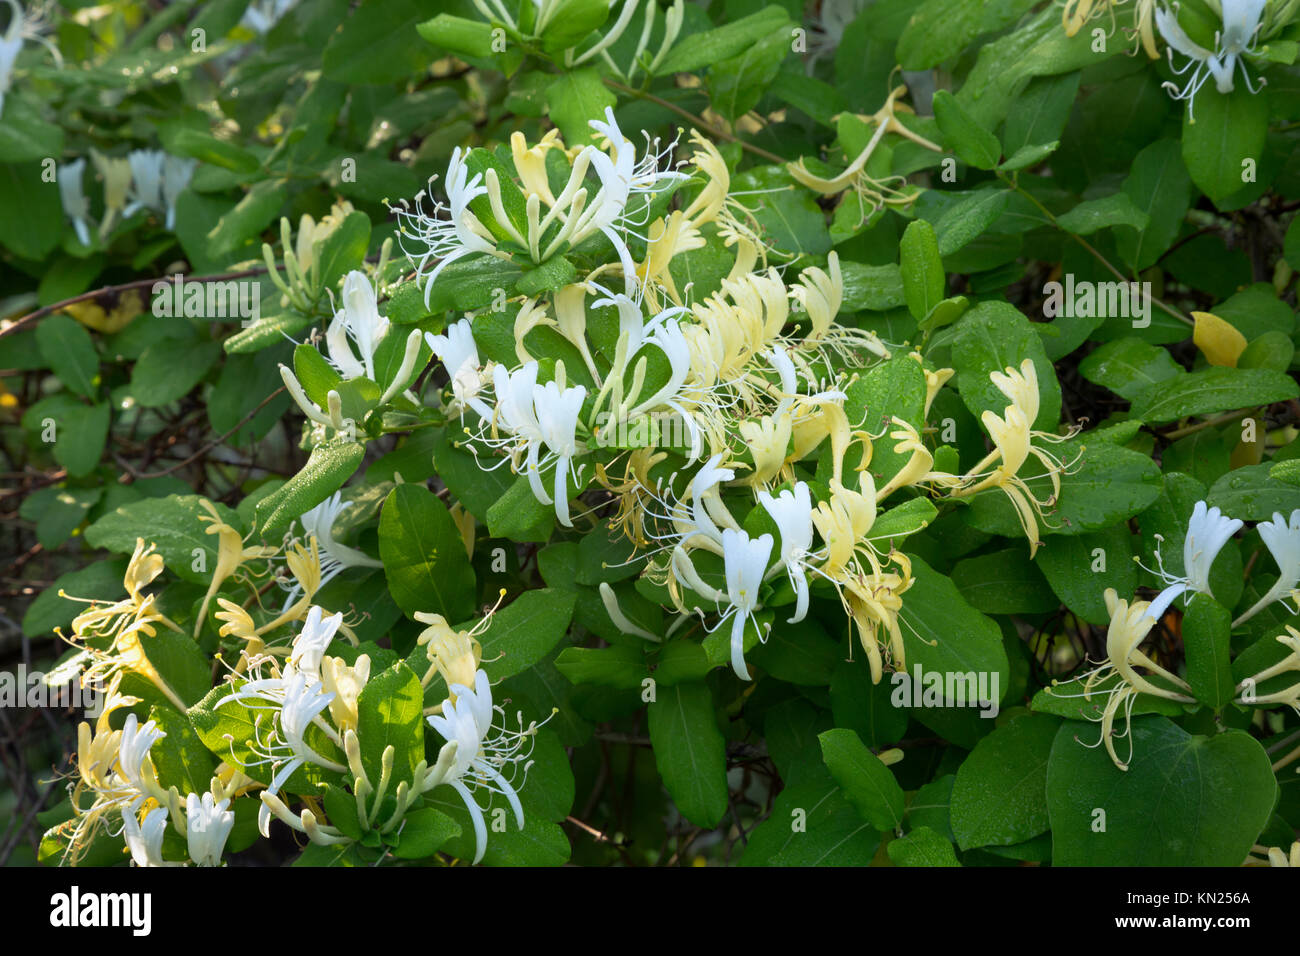 NC01044-00...NORTH CAROLINA - Flowers blooming along the Hammock Hills Nature Trail on Ocracoke Island in the Cape - Stock Image